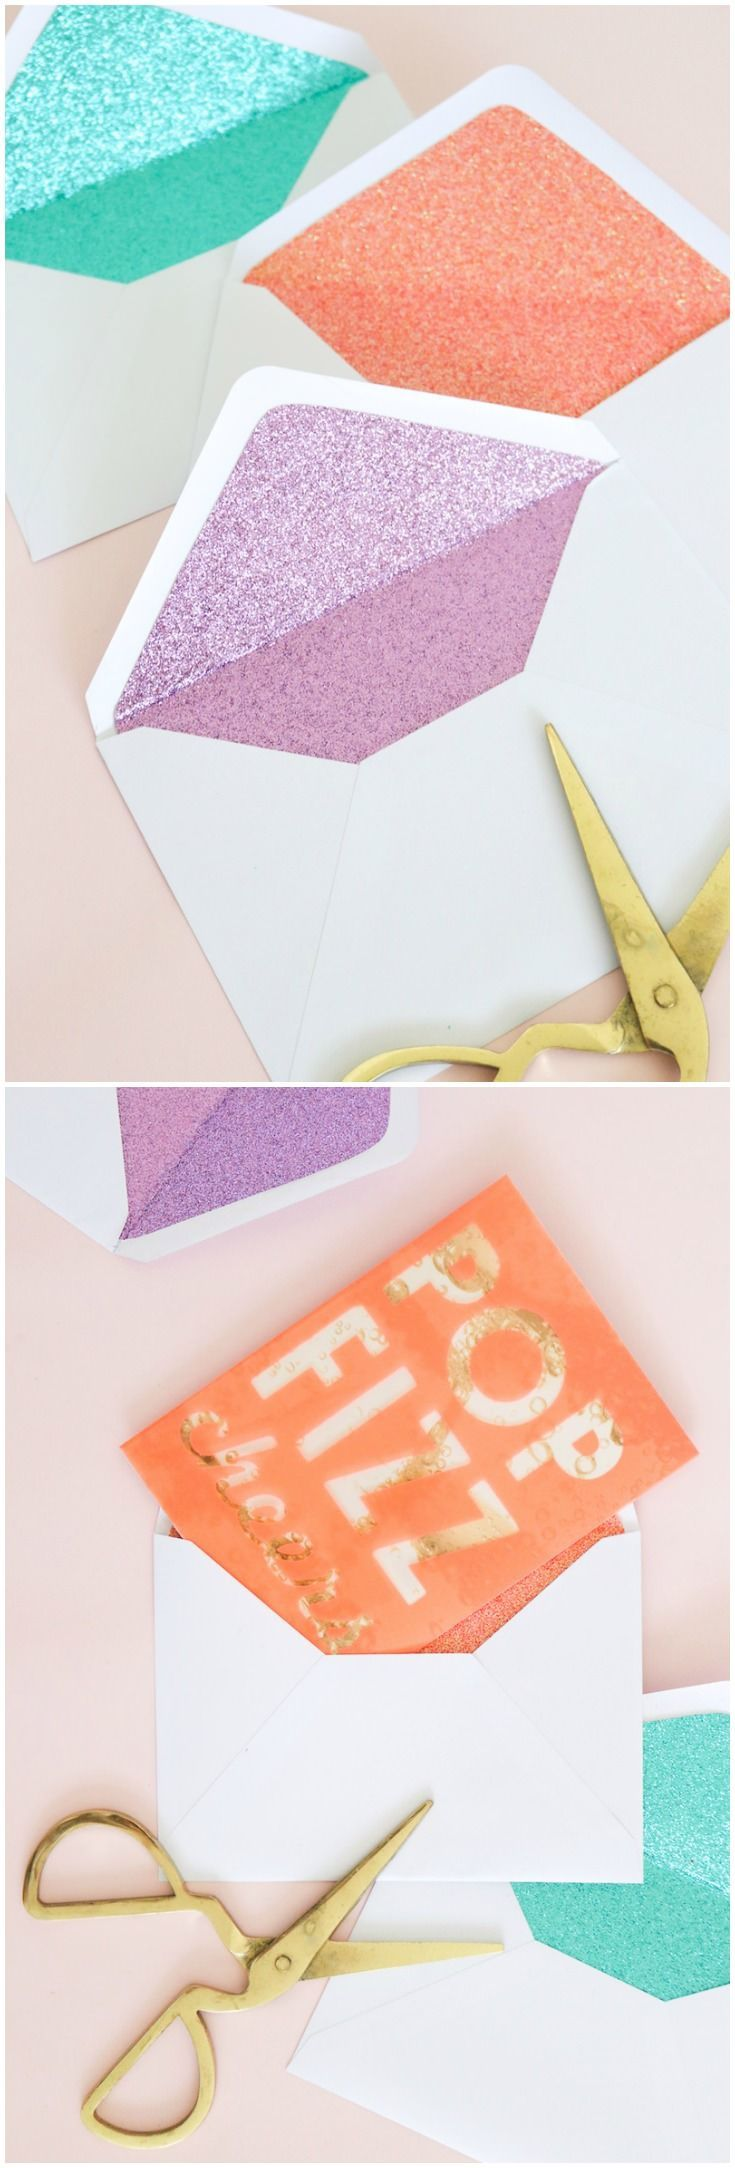 These DIY glitter lined envelopes are easy to make and add a surprise pop of color when the envelope is opened! Perfect for party invitations. via @modpodgerocks